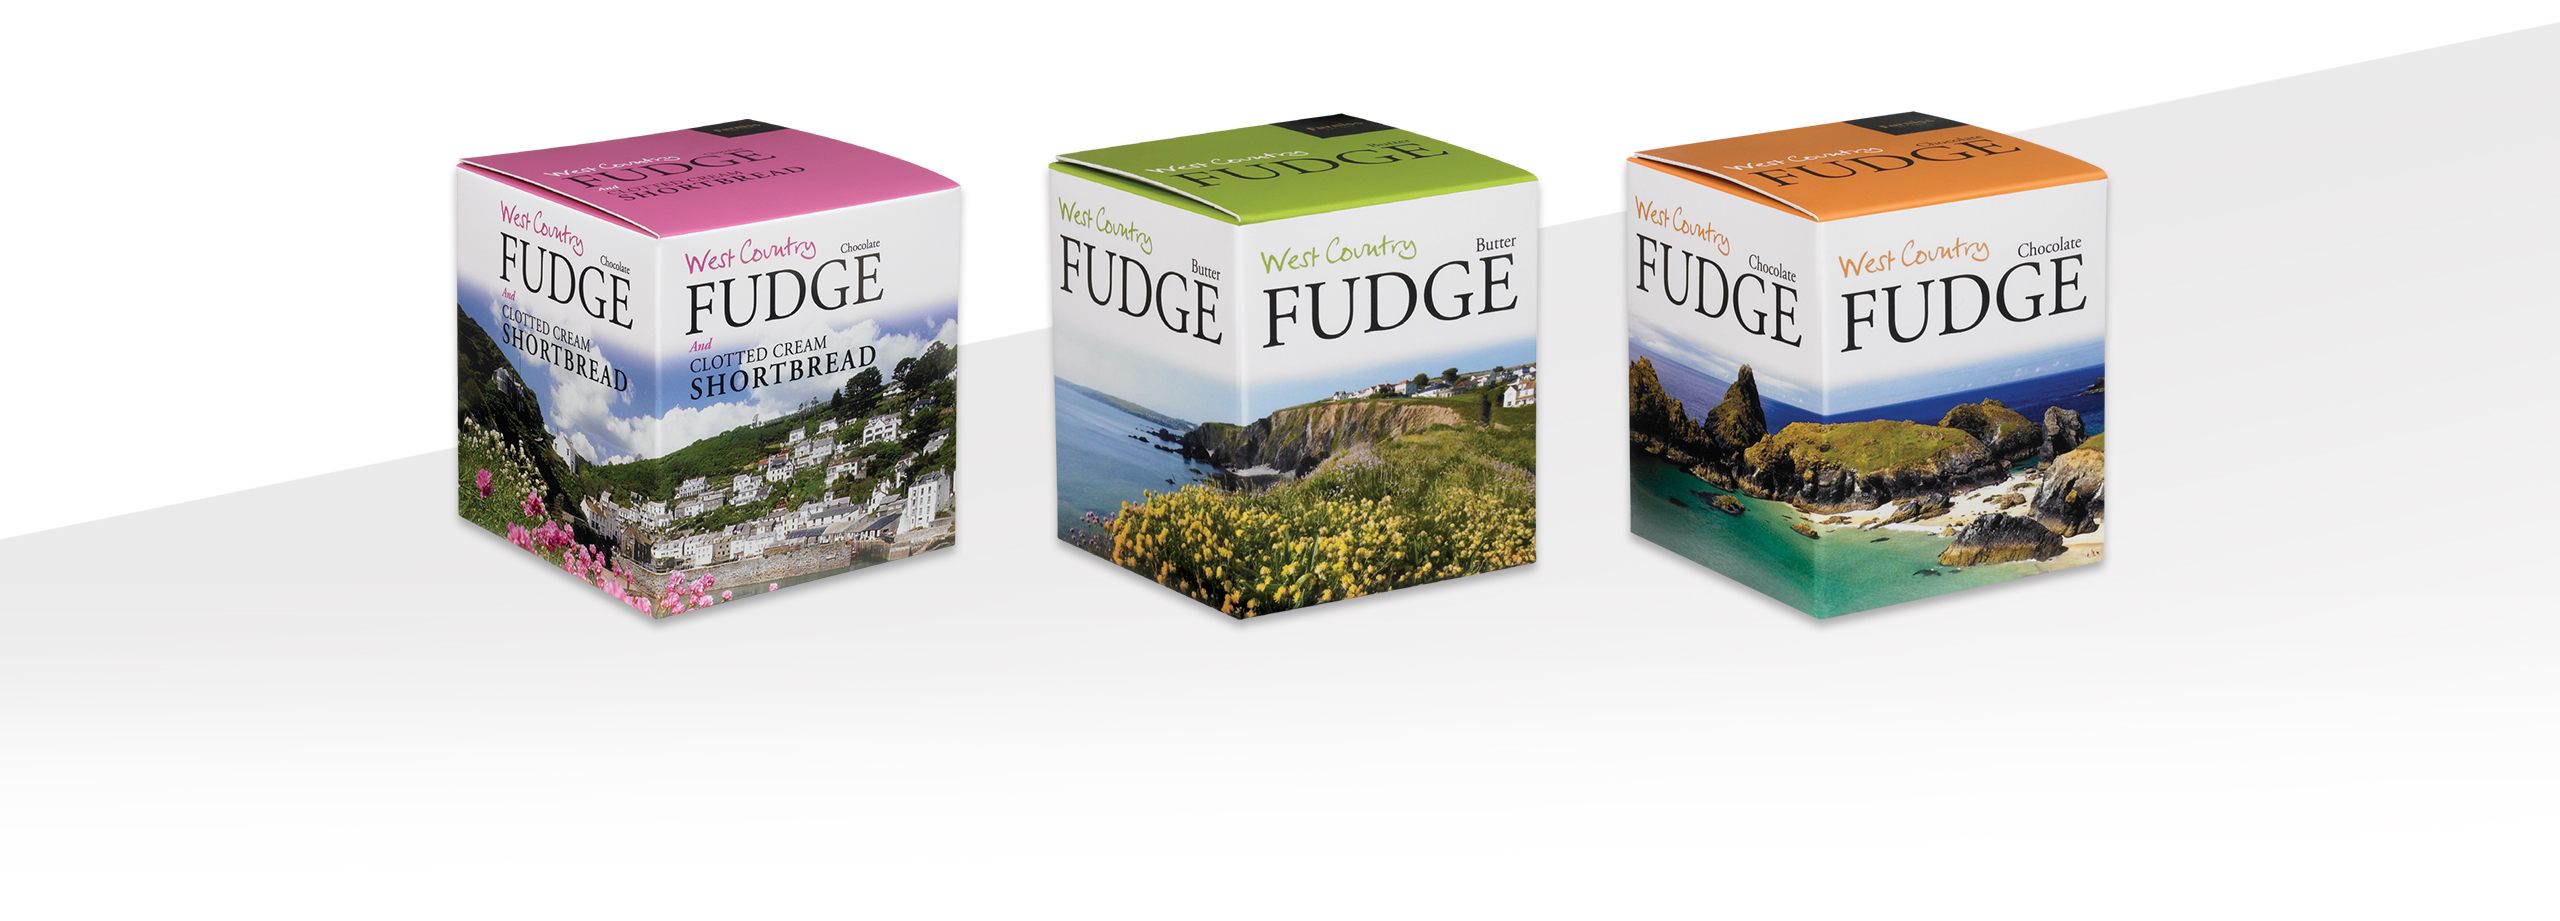 packaging design for westcountry fudge shown in 3 different colours, pink, green and orange